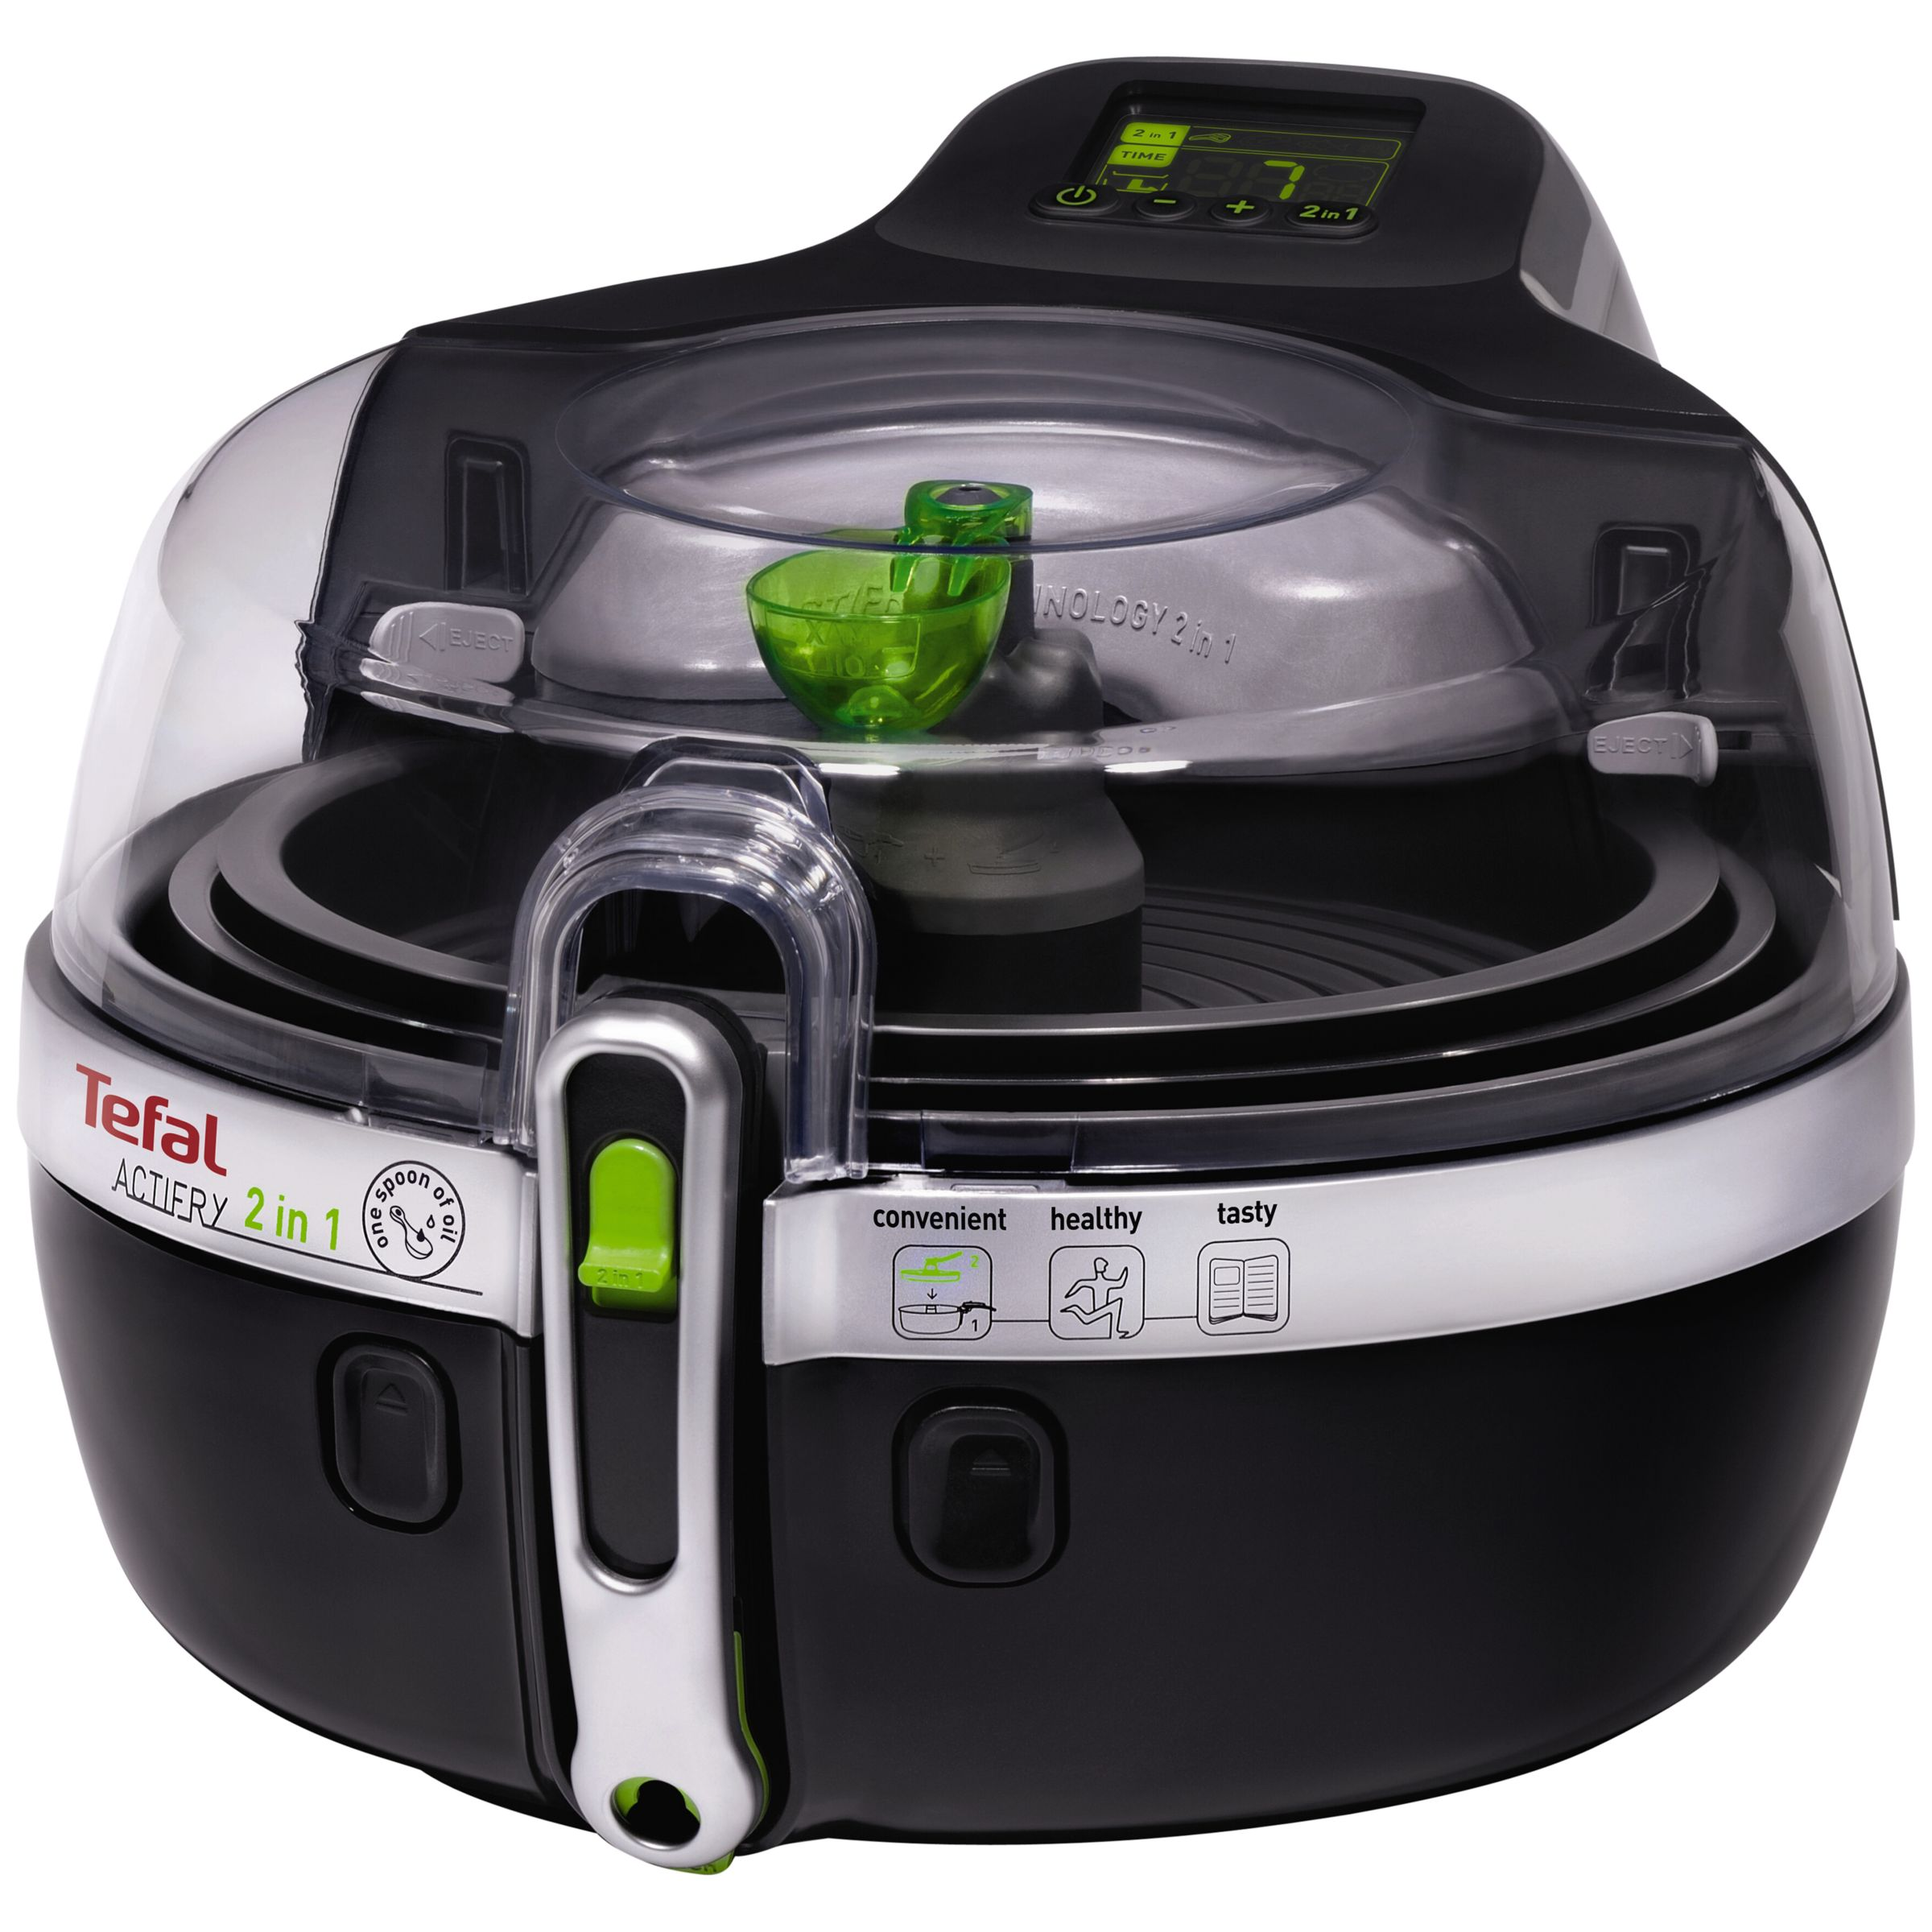 Tefal ActiFry 2in1 Low Fat Fryer